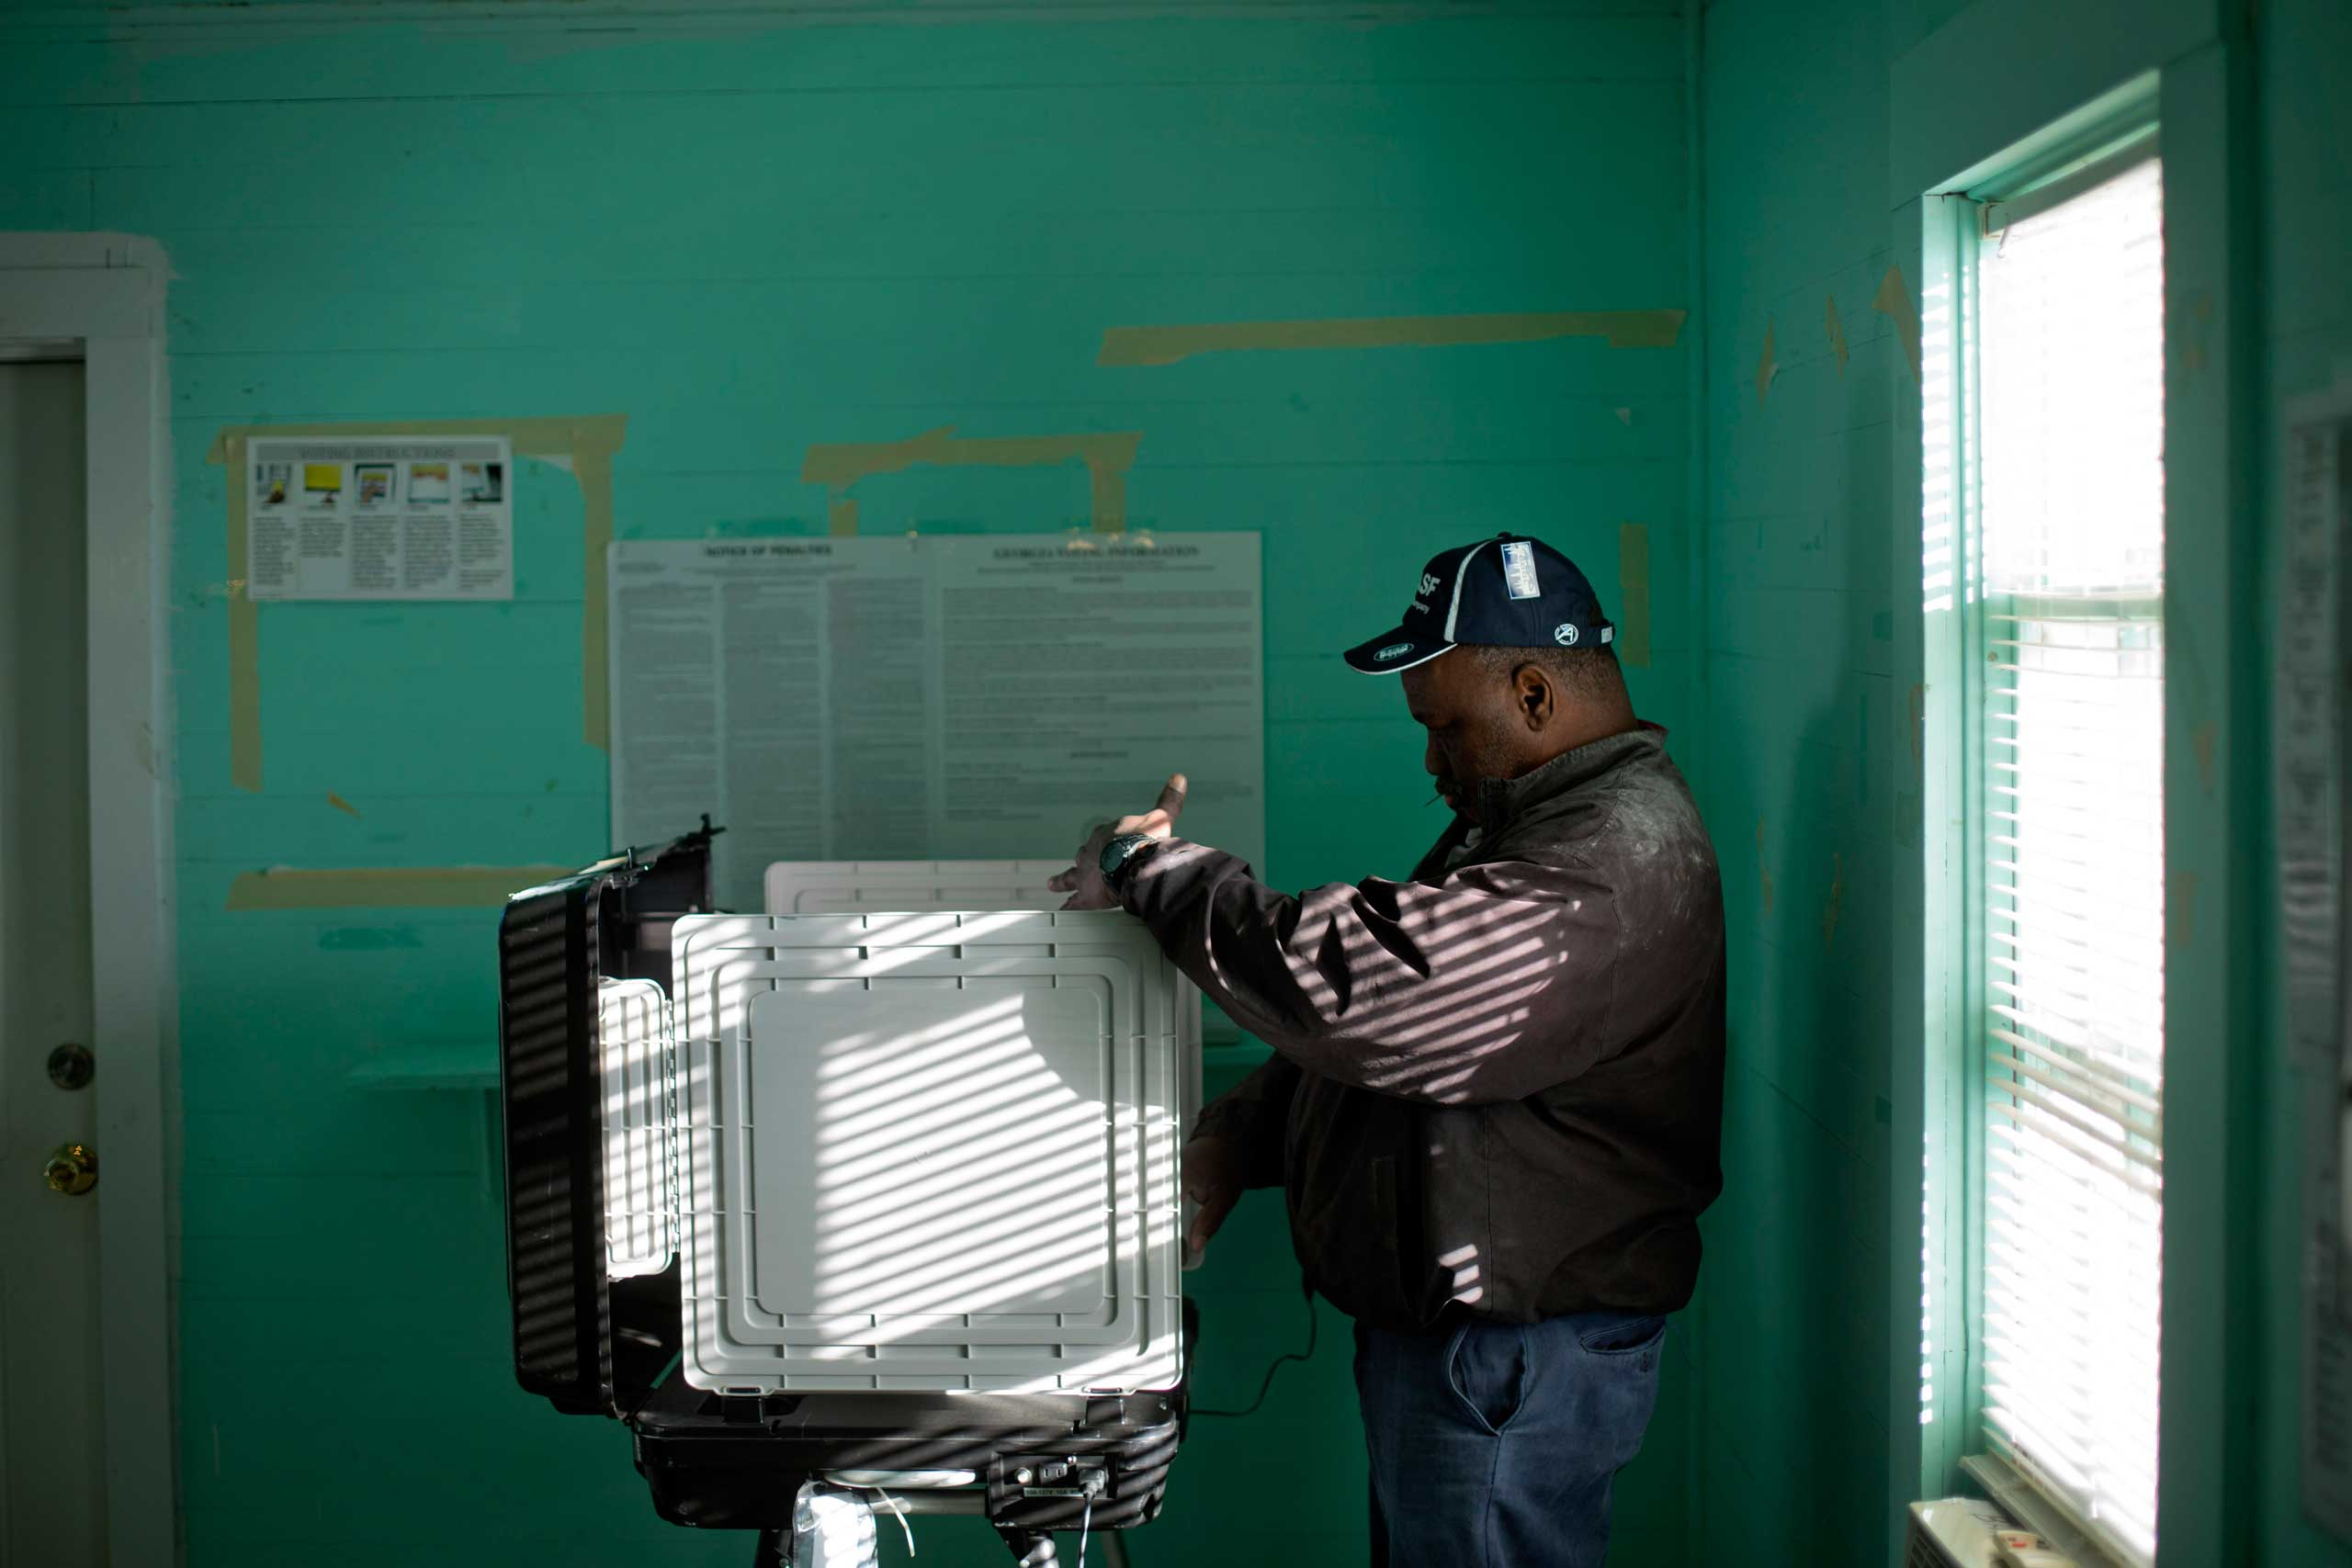 Voter Larry Levatte casts his ballot inside the old Hoggards Mill Courthouse of Baker County in Newton, Ga. on Nov. 4, 2014.